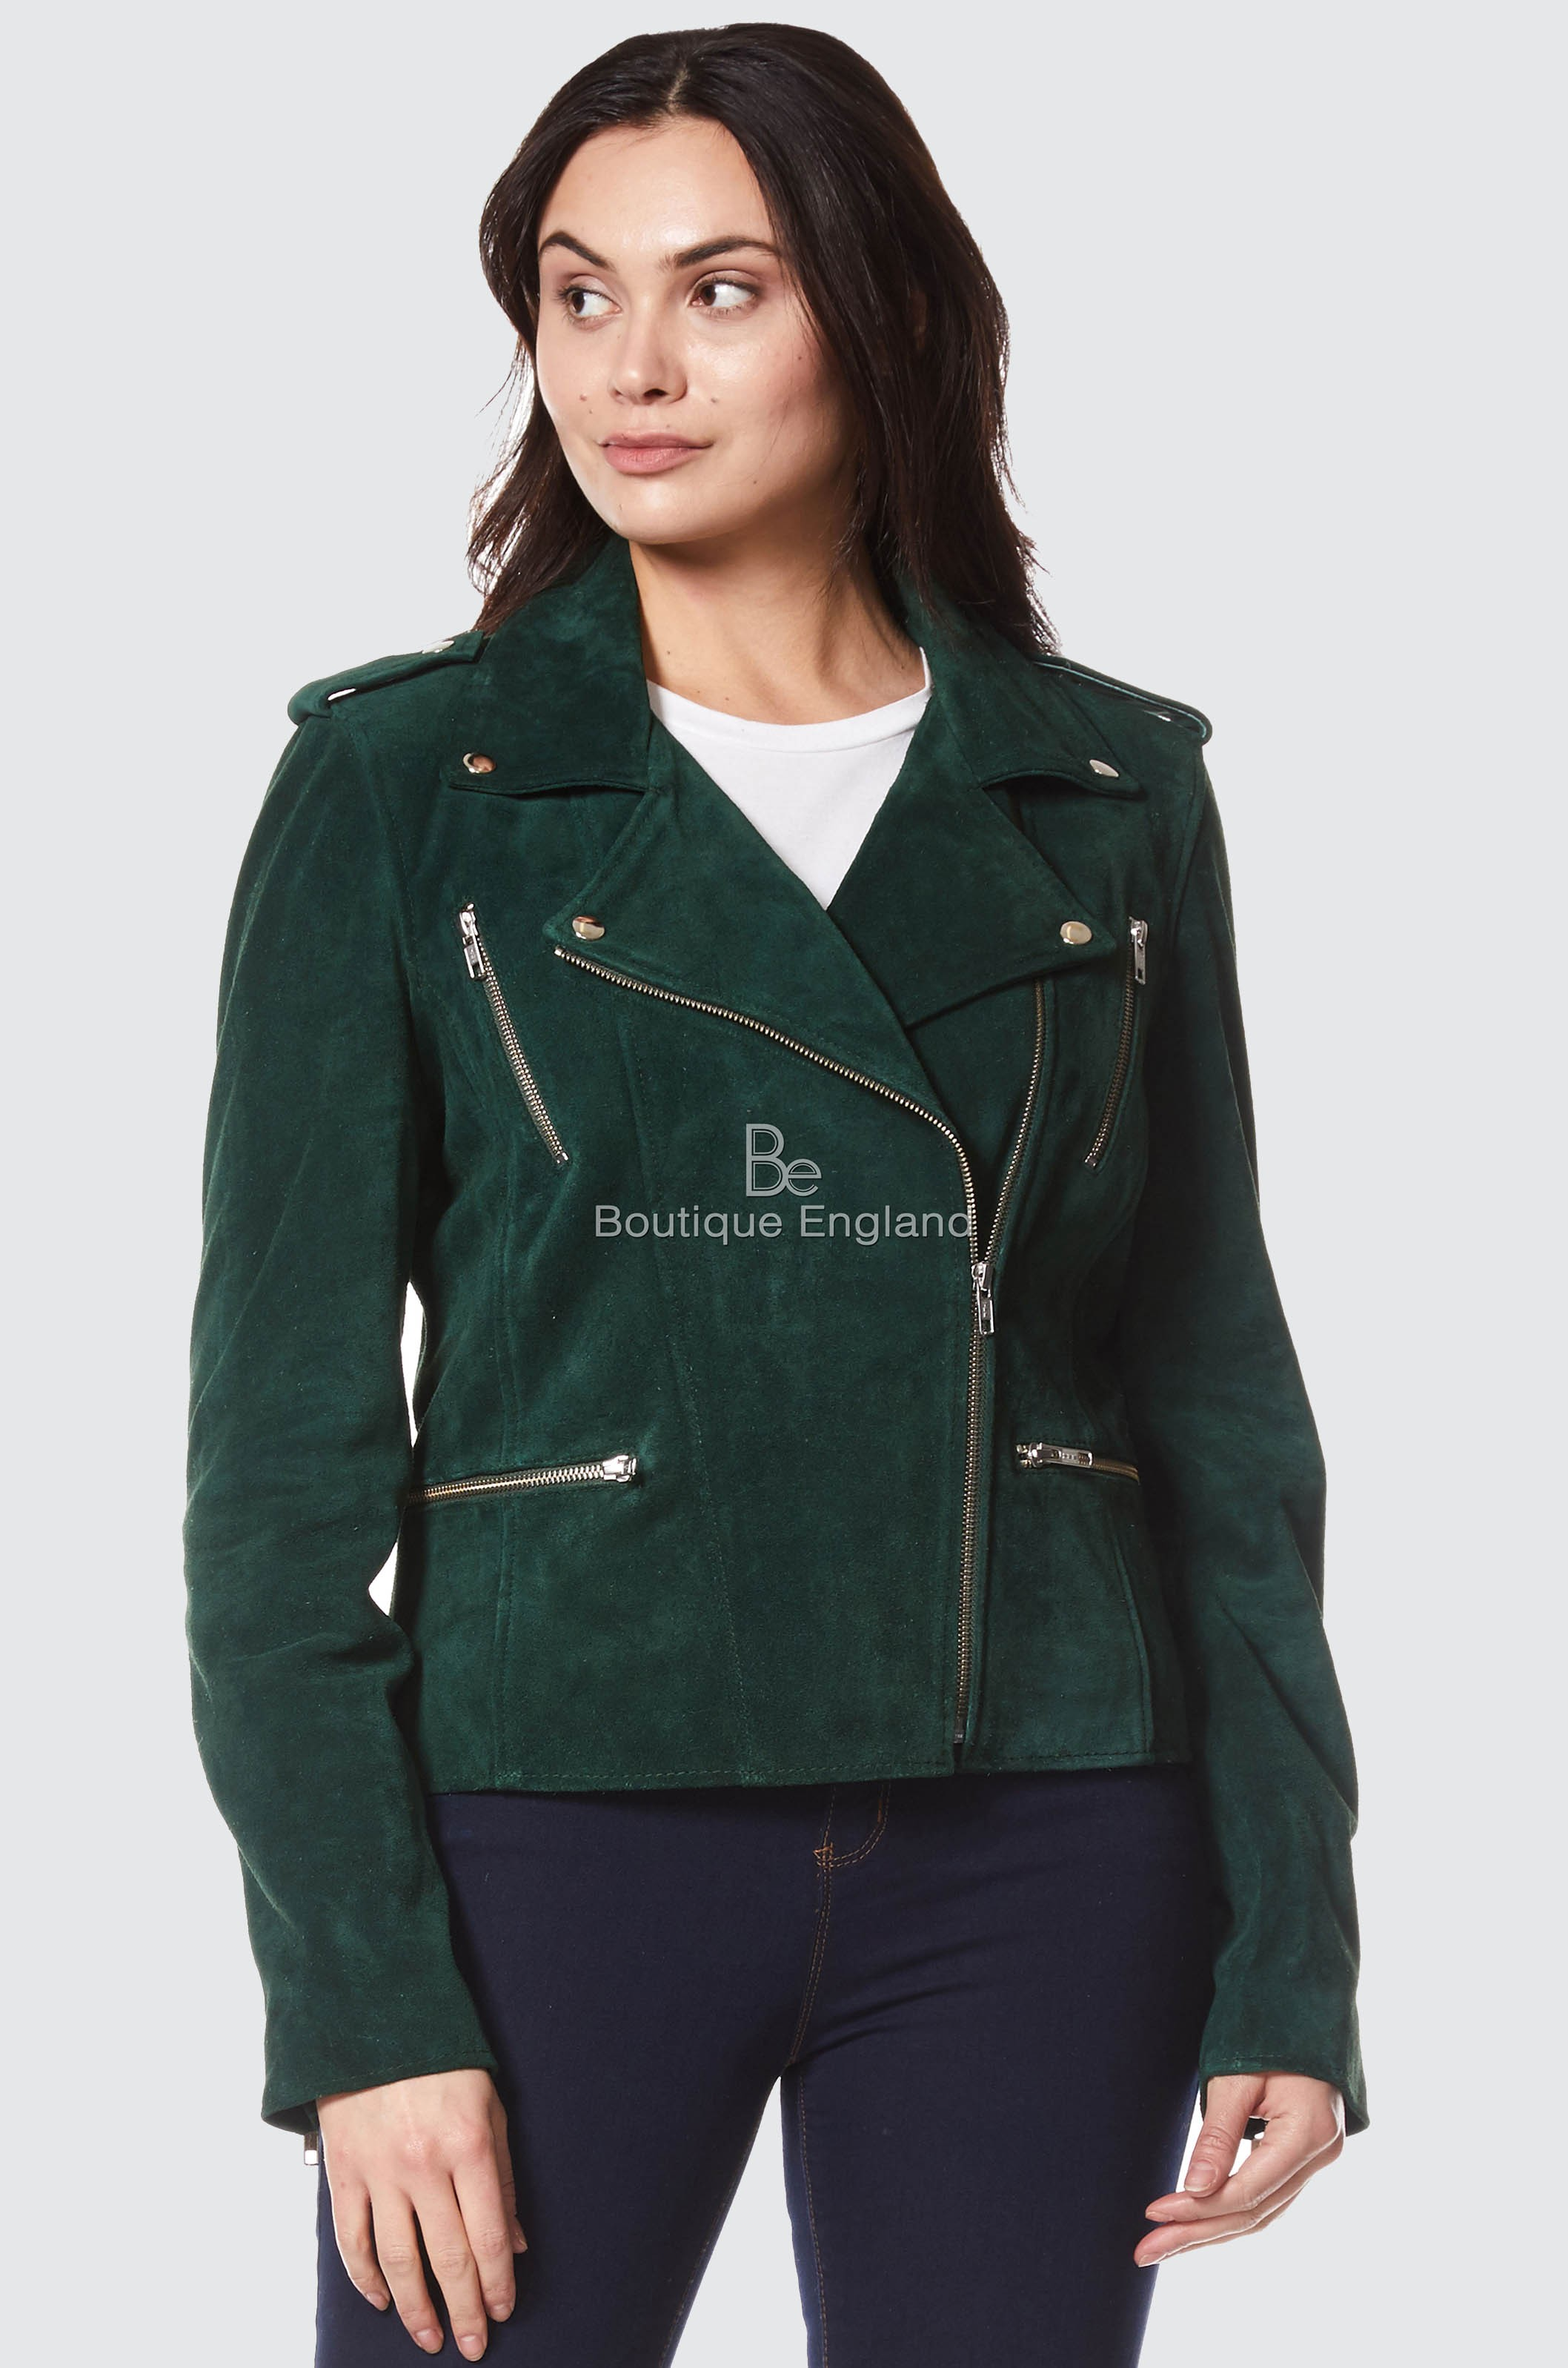 498255ca1 LADIES GREEN SUEDE BIKER STYLE MOTORCYCLE DESIGNER NAPPA LEATHER JACKET  7113-A